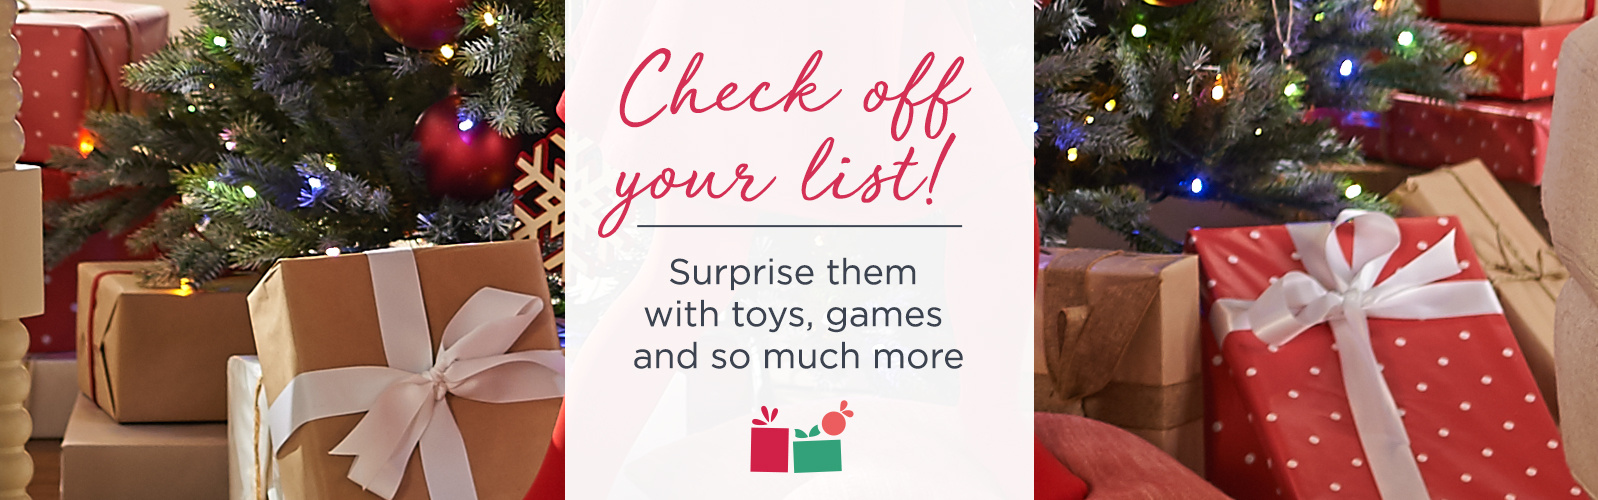 Check off your list!  Surprise them with toys, games & so much more.